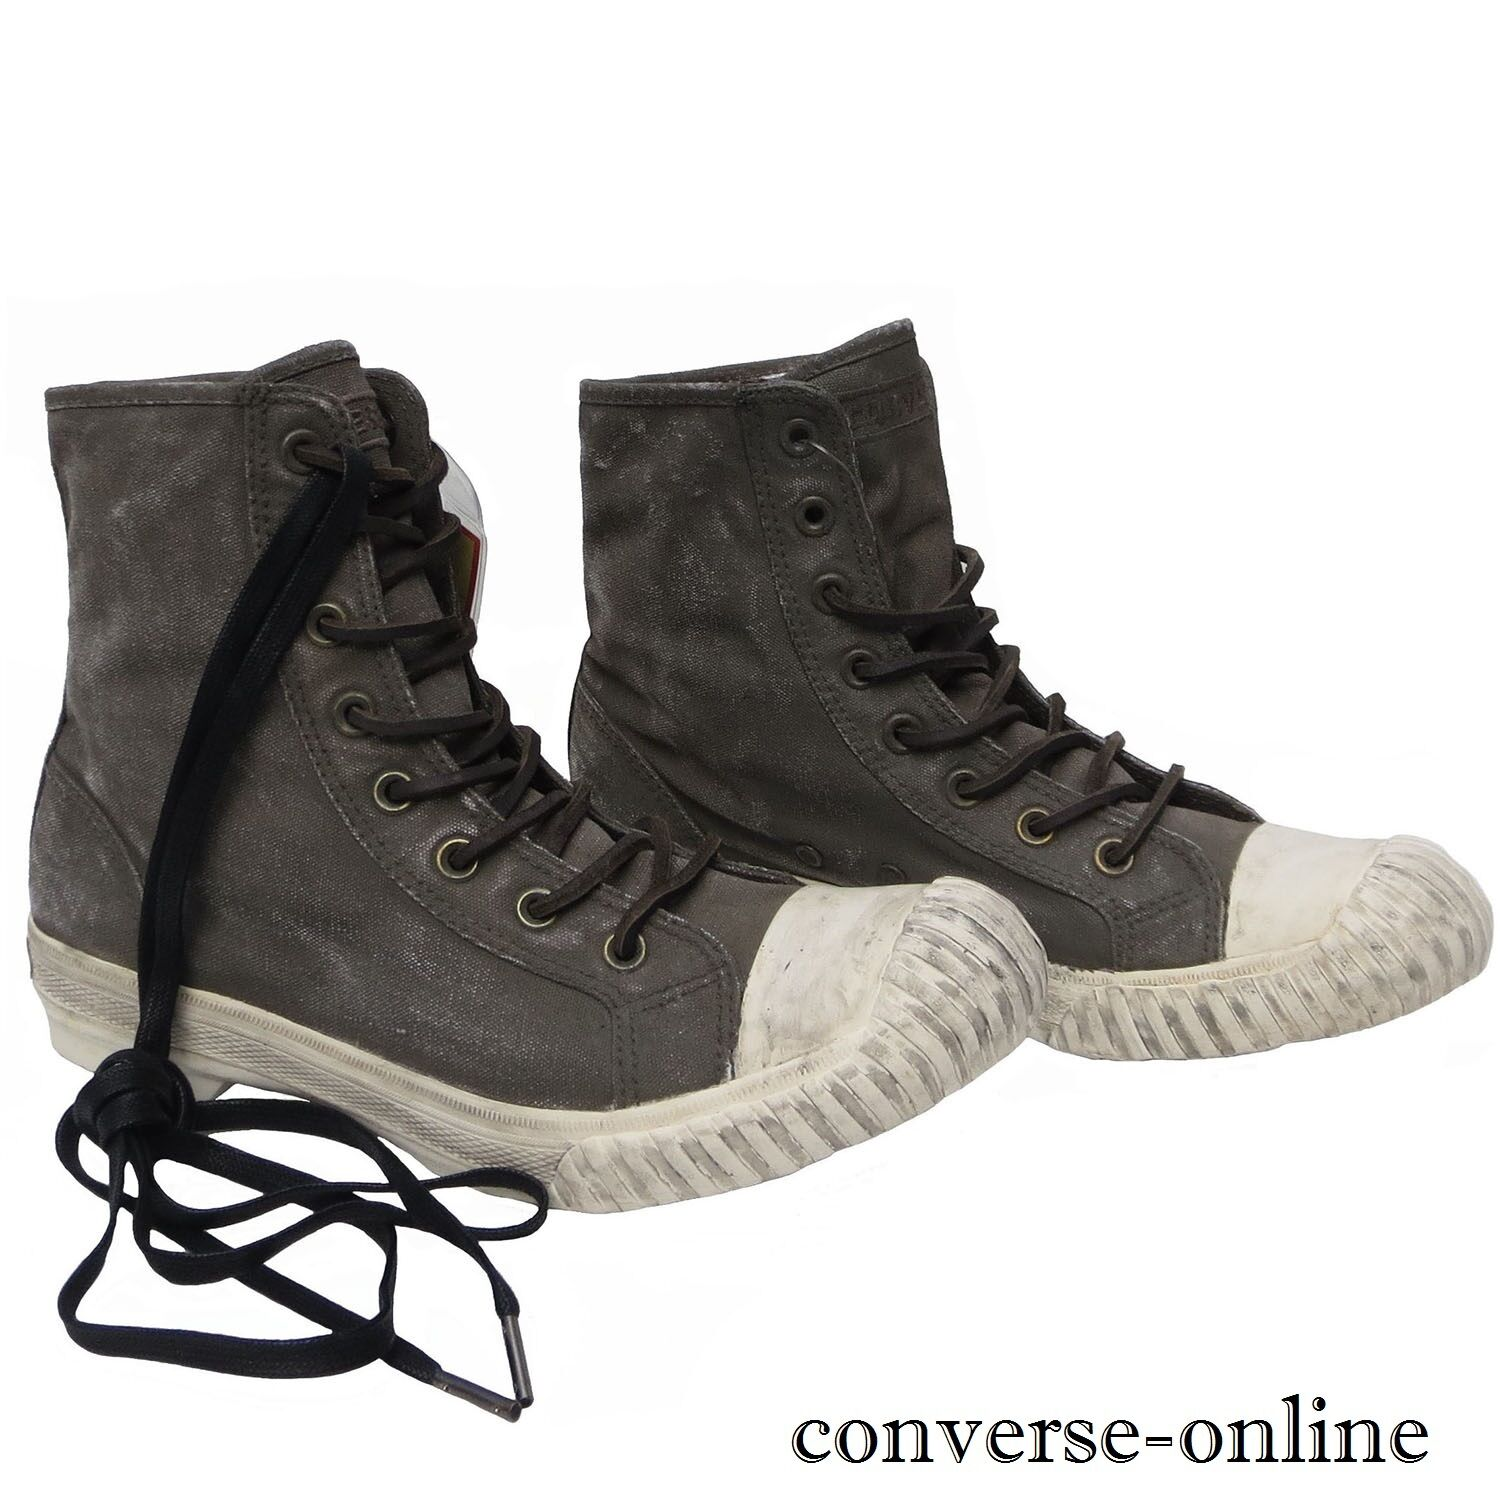 CONVERSE All Star Star Star JOHN VARVATOS Painted Canvas BOSEY HI Trainers Stiefel SIZE UK 9 588d69